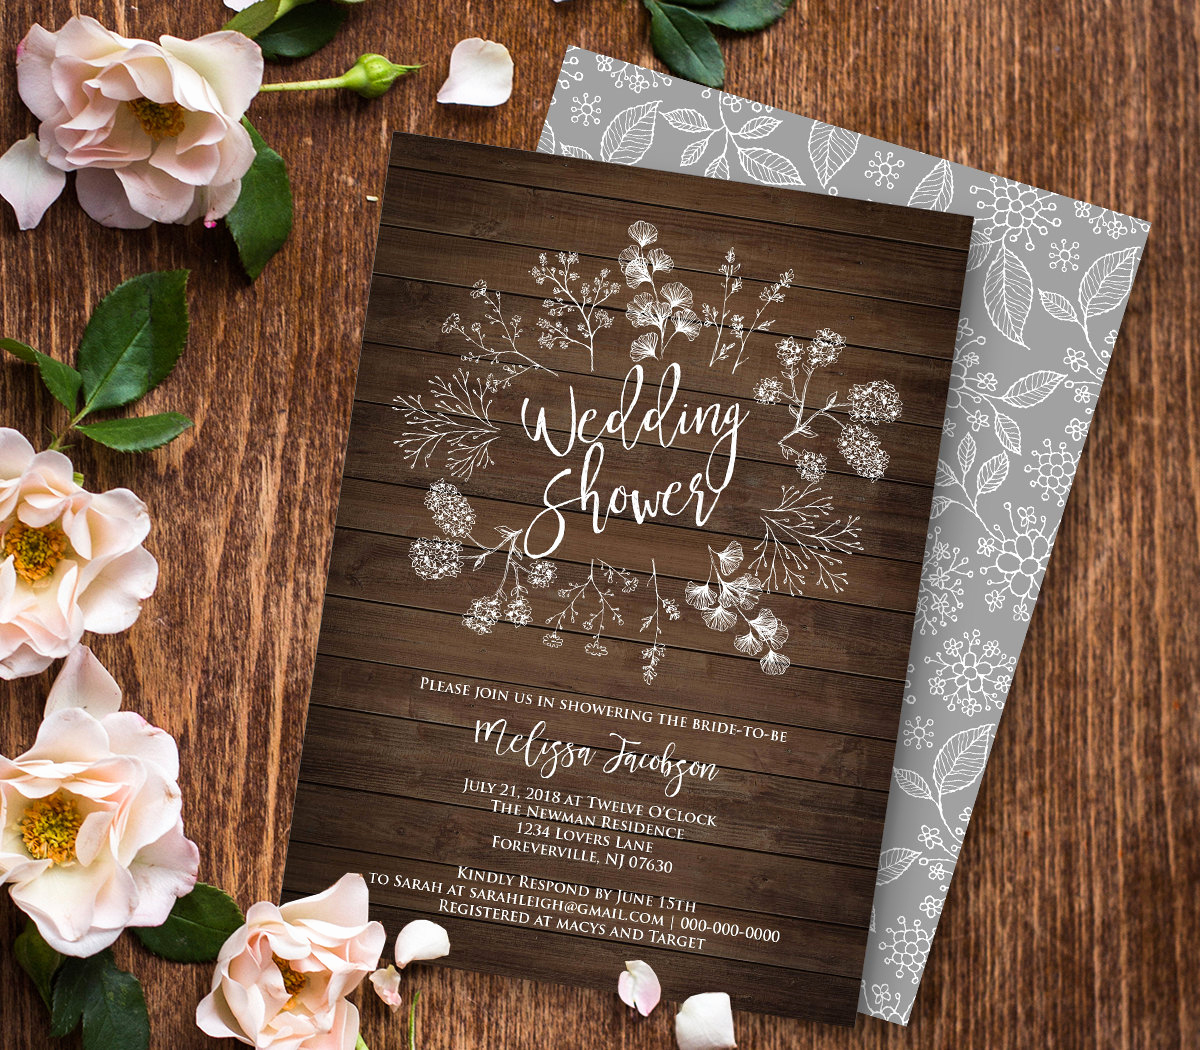 Printable Bridal Shower Invitation Templates Lovely Wedding Shower Invitation Template Couples Shower Printable